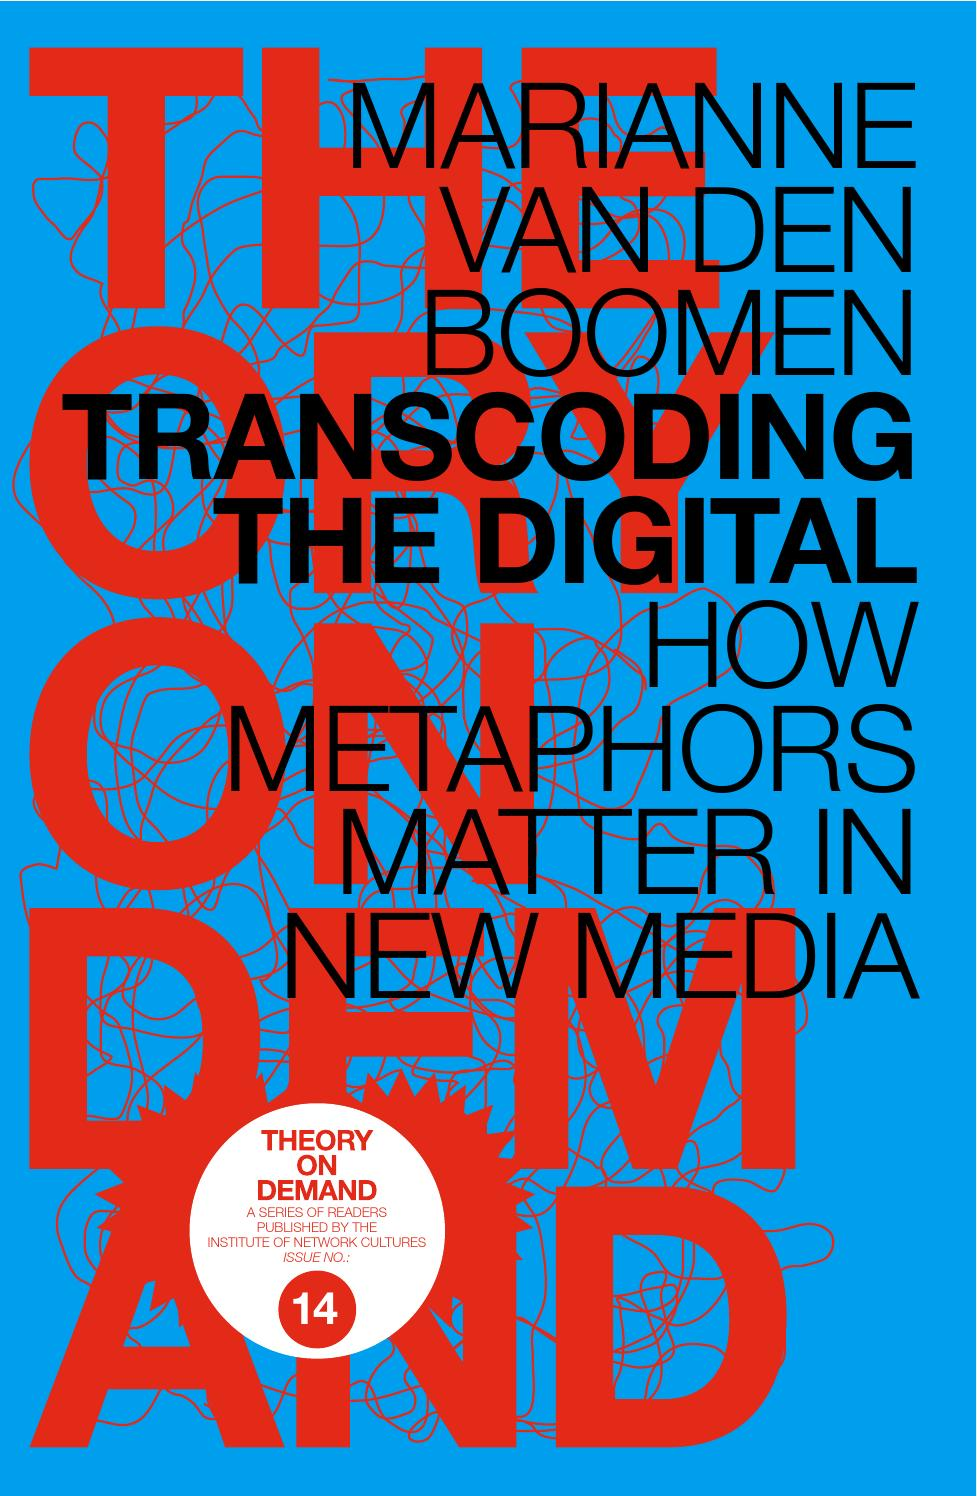 Transcoding The Digital How Metaphors Matter In New Media